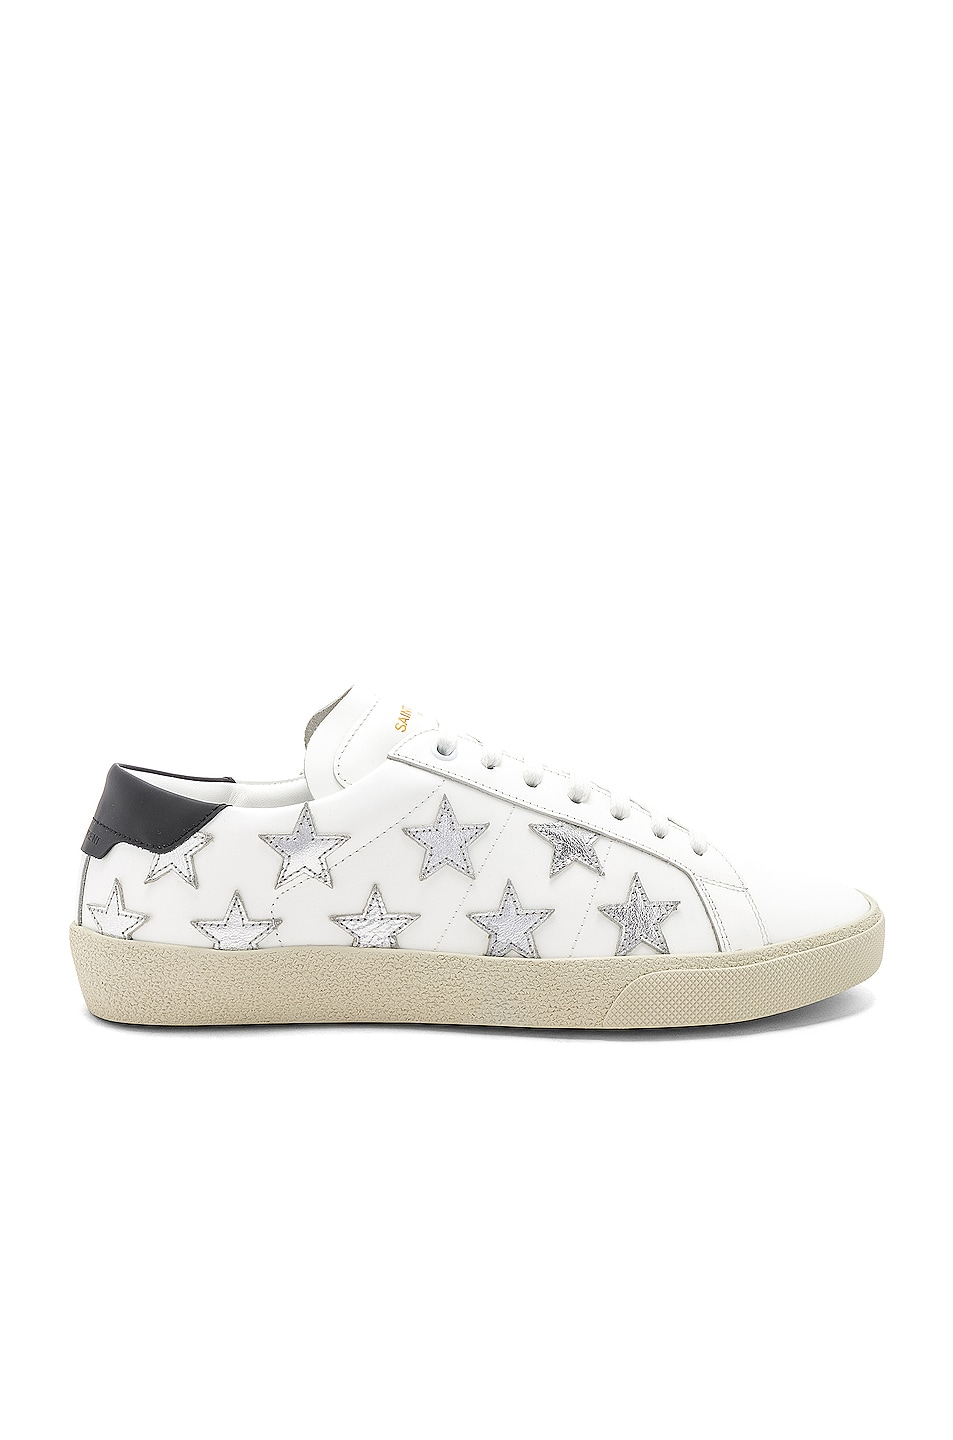 Image 1 of Saint Laurent Star Leather Low Top Sneakers in White & Silver